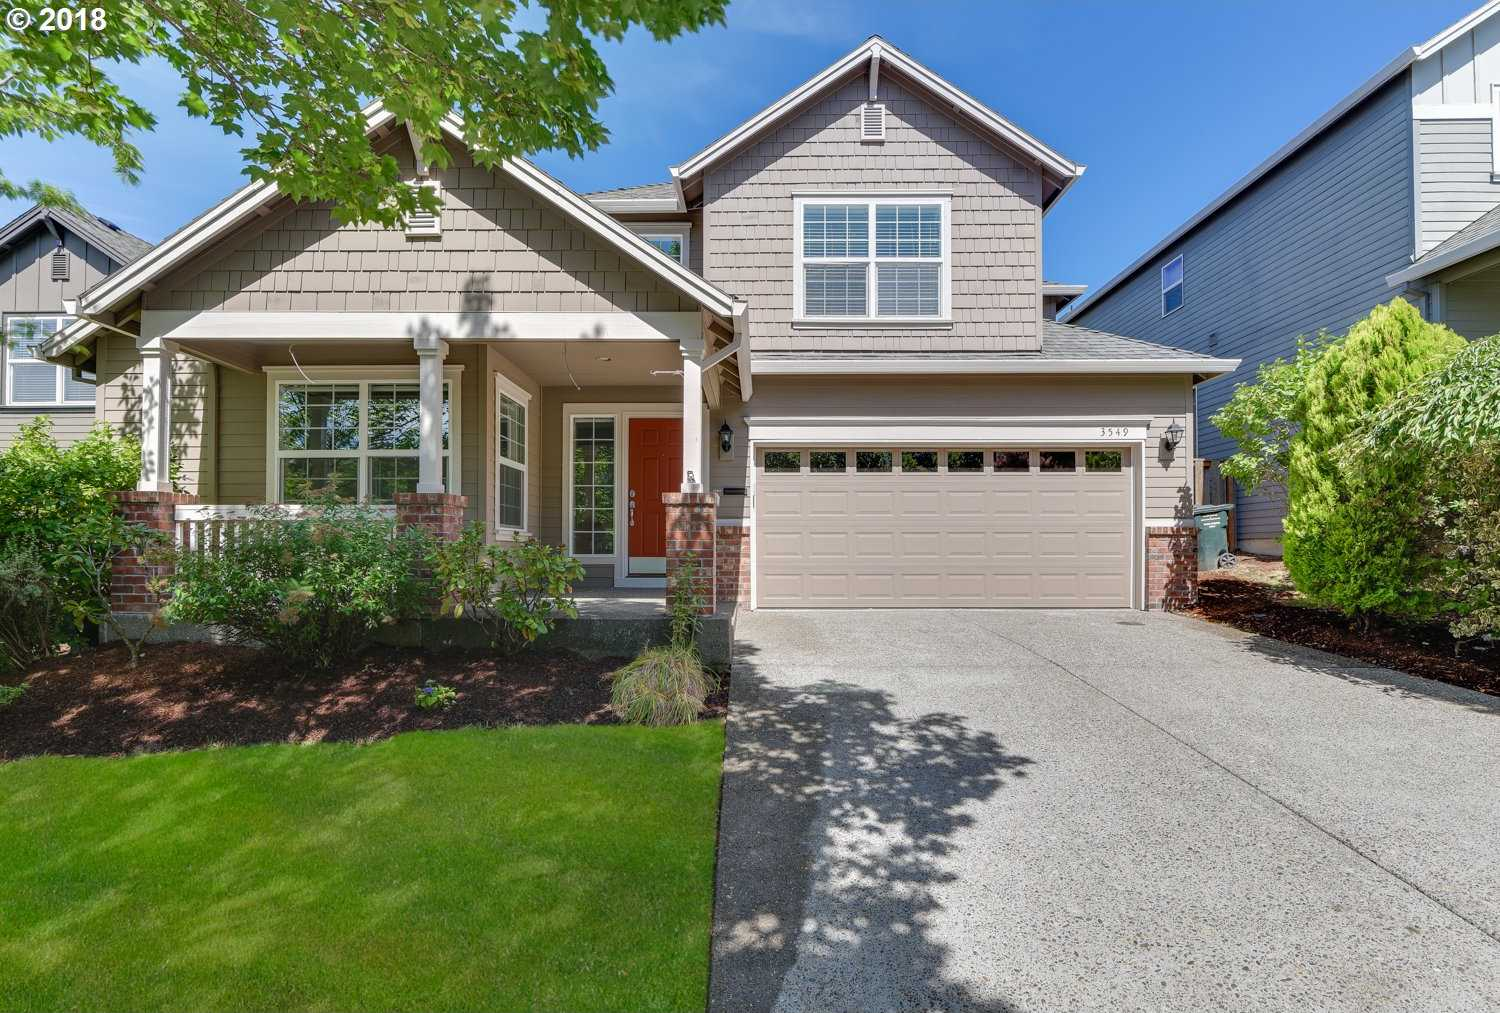 $615,000 - 5Br/3Ba -  for Sale in Willow Creek Heights, Portland